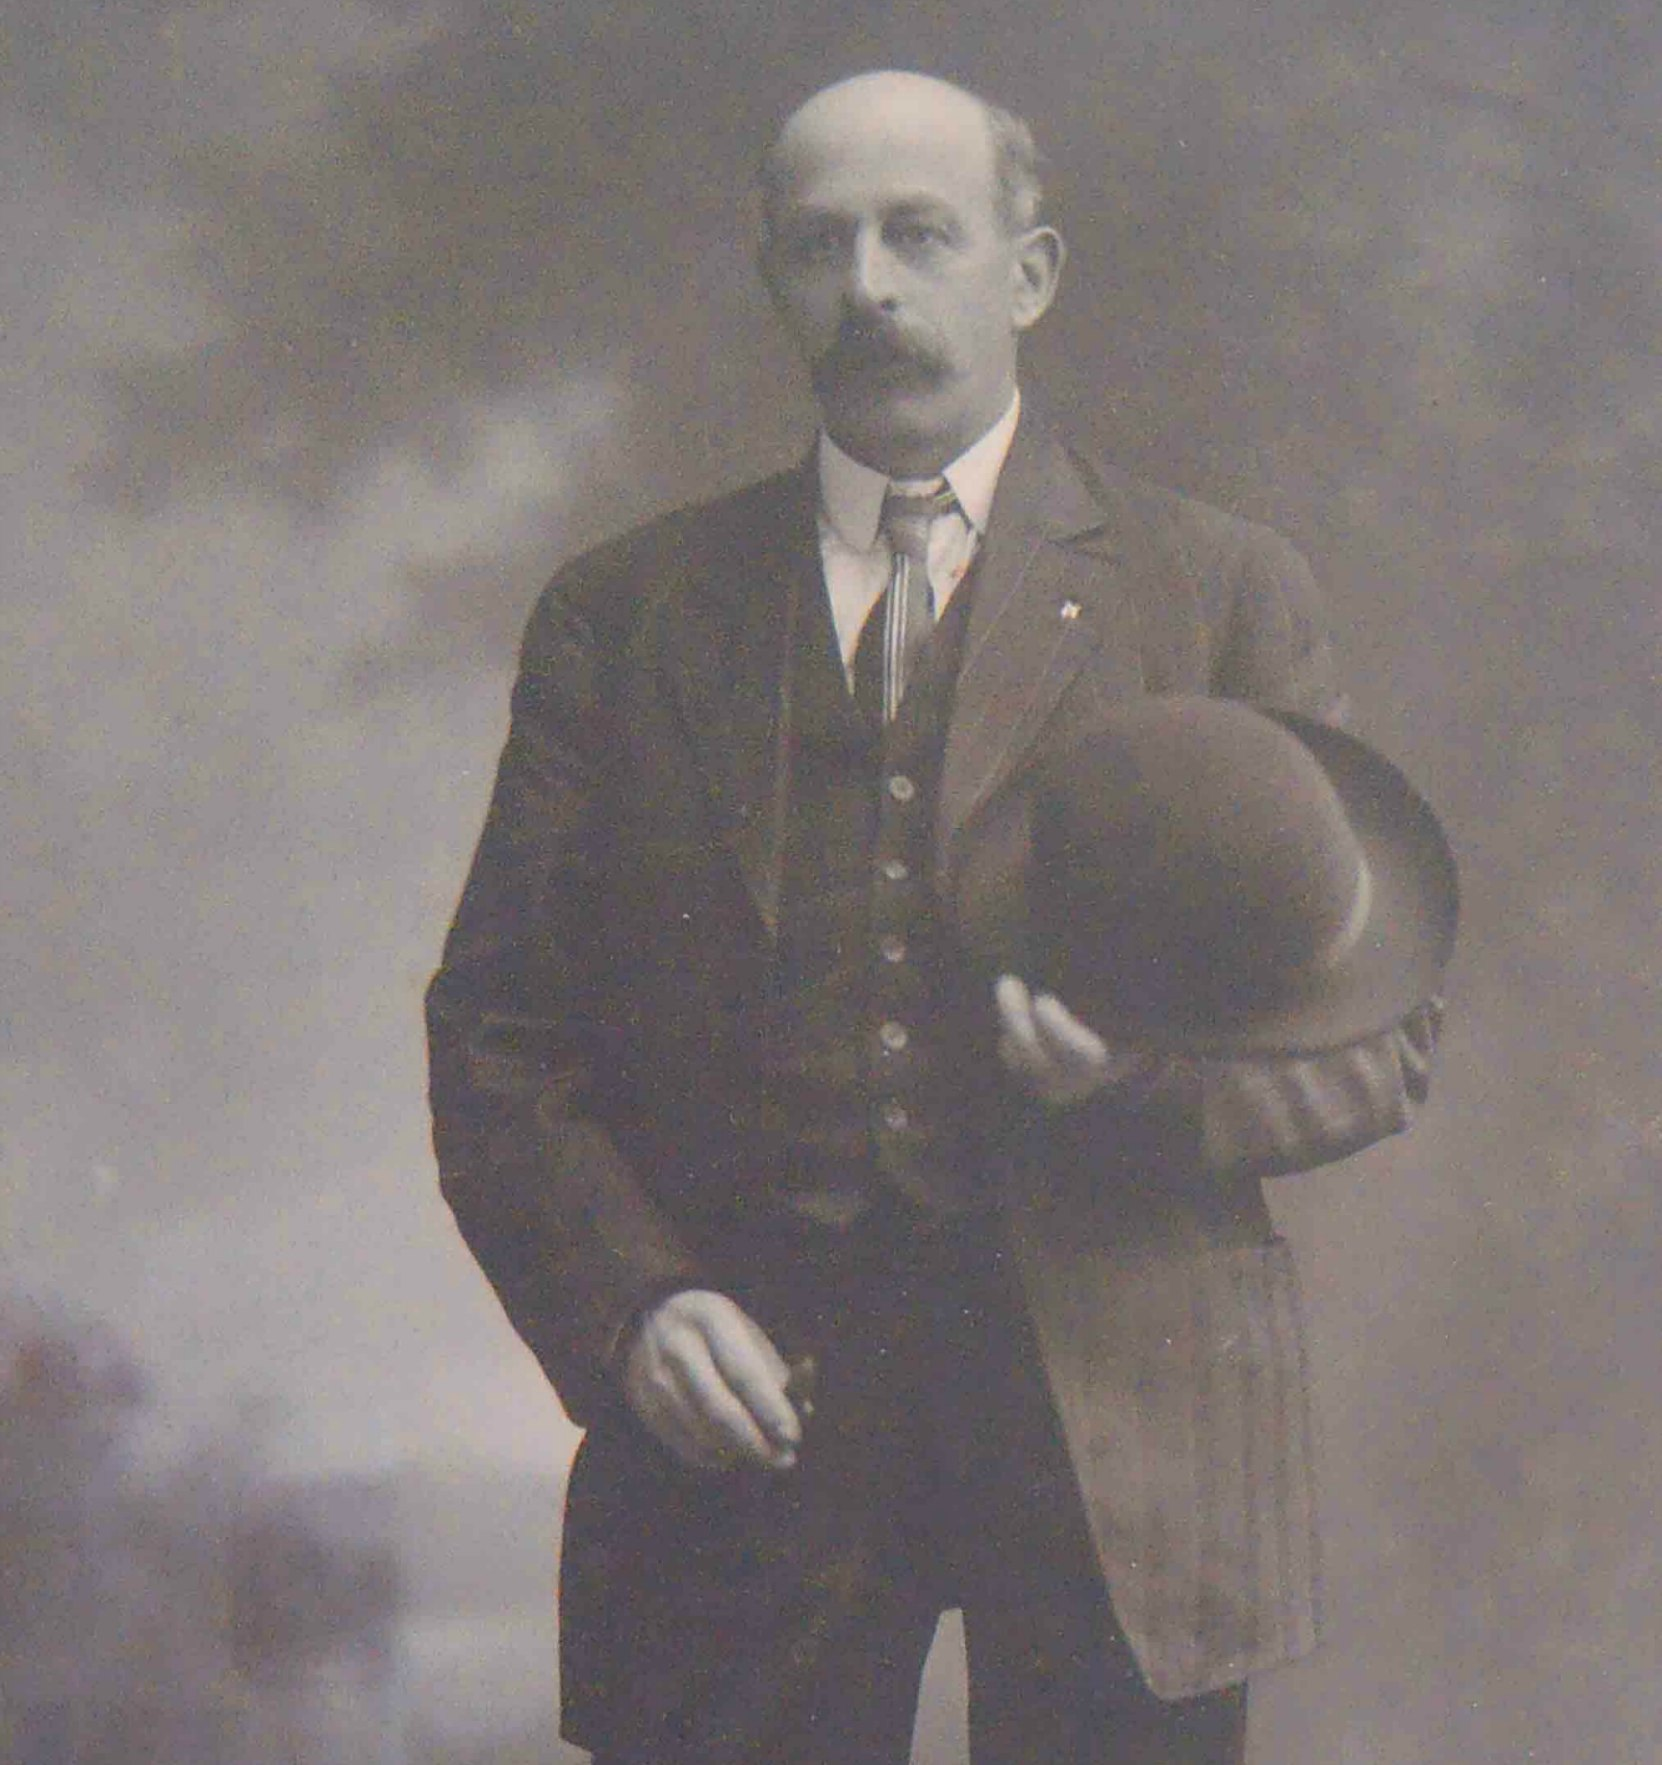 Harry Smith, Worshipful Master of Temple Lodge, No.33 in 1901